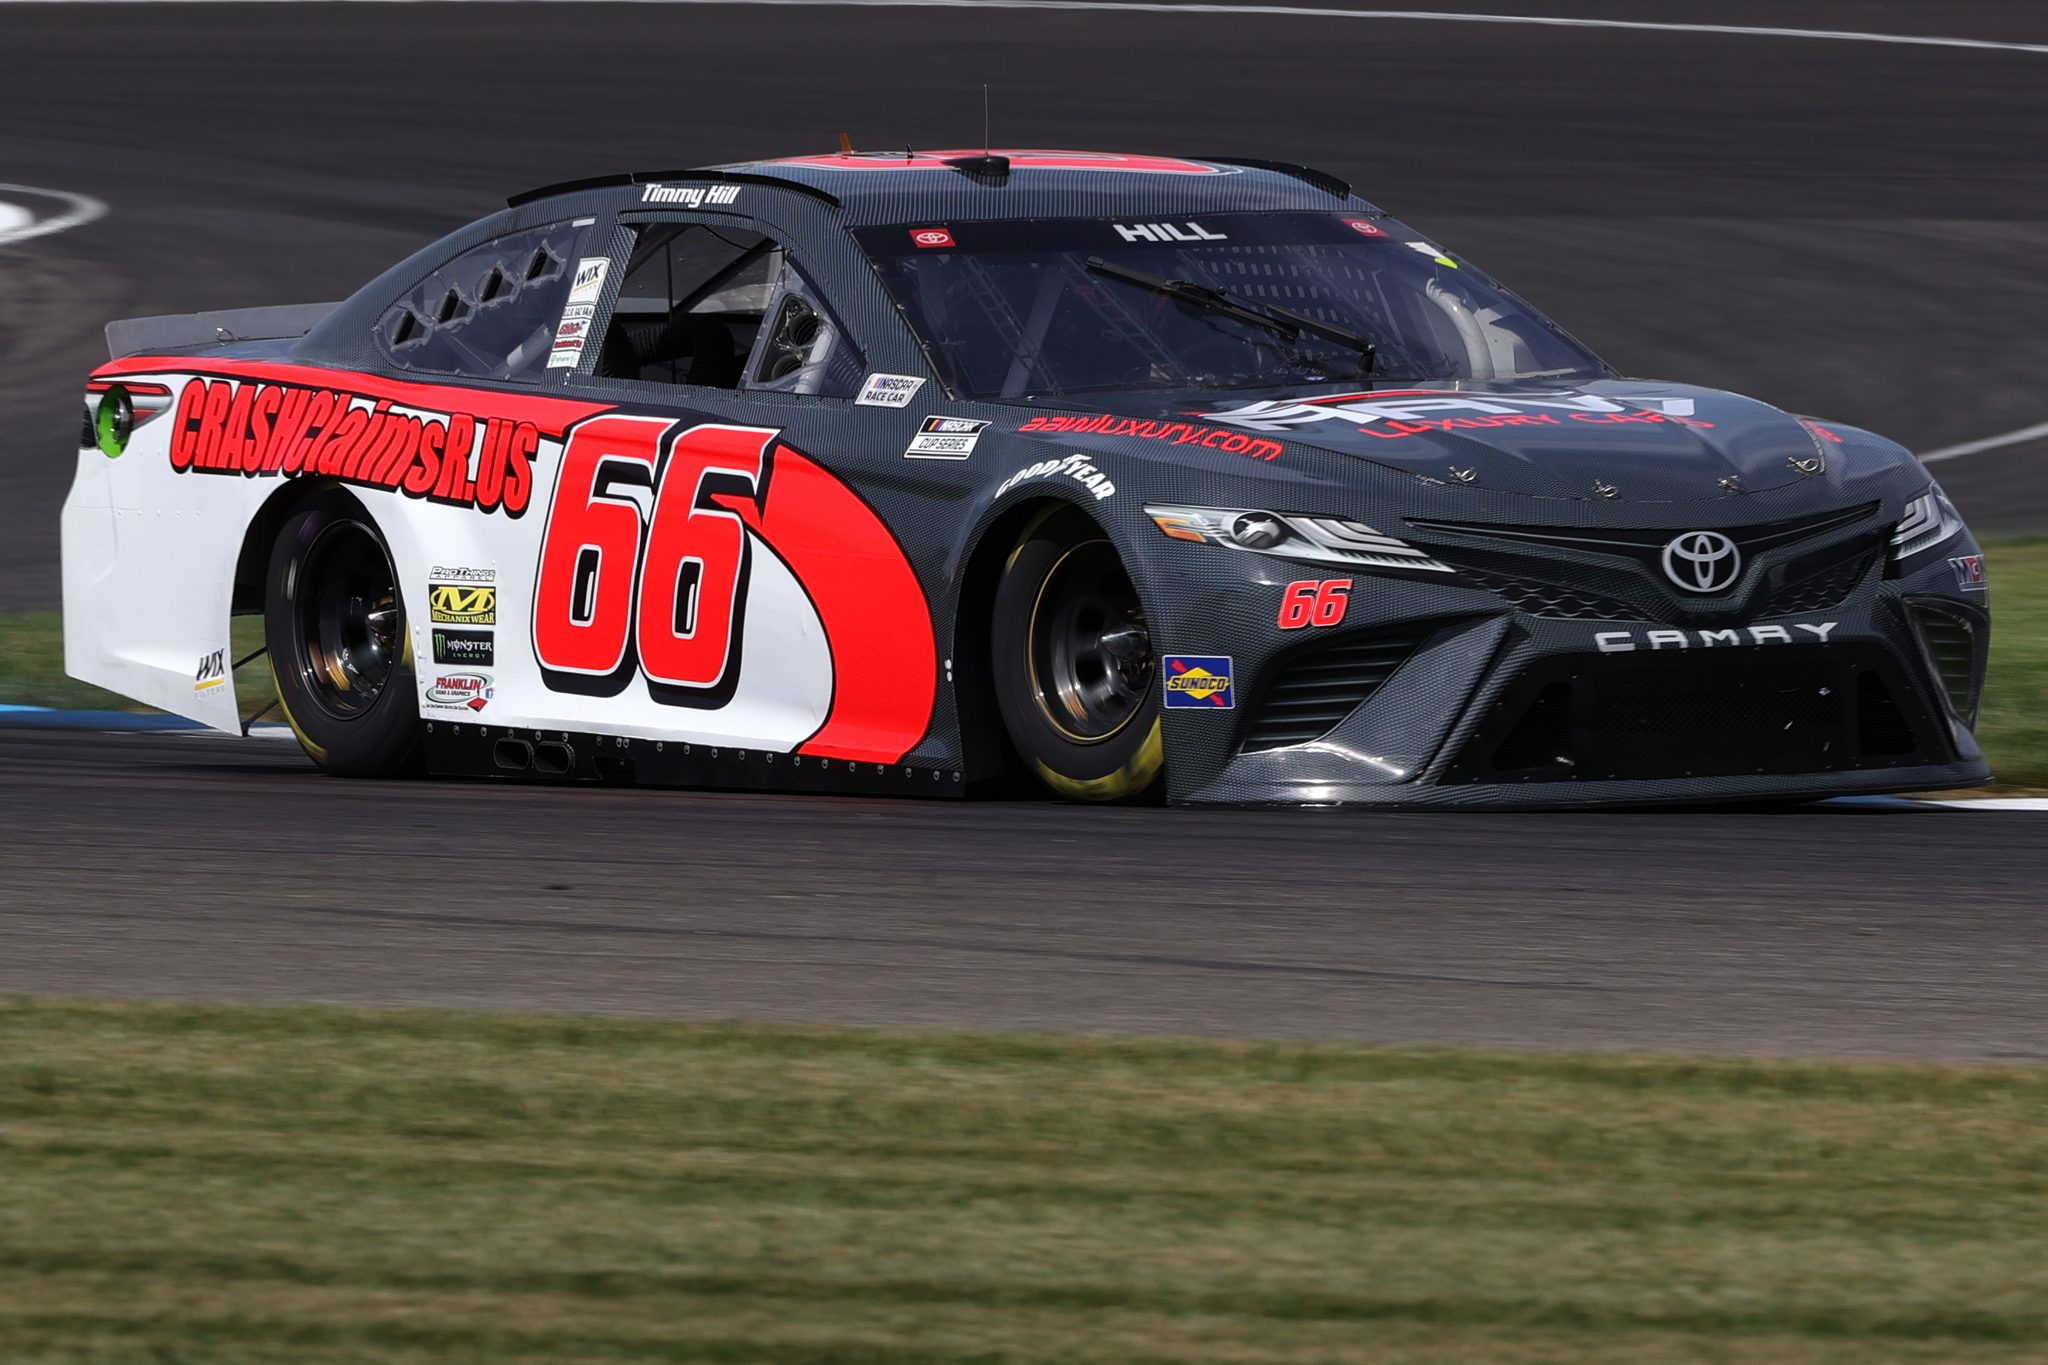 INDIANAPOLIS, INDIANA - AUGUST 14: Timmy Hill, driver of the #66 AAW Luxury Cars/CrashClaims Toyota, drives during practice for the NASCAR Cup Series Verizon 200 at the Brickyard at Indianapolis Motor Speedway on August 14, 2021 in Indianapolis, Indiana. (Photo by Stacy Revere/Getty Images) | Getty Images